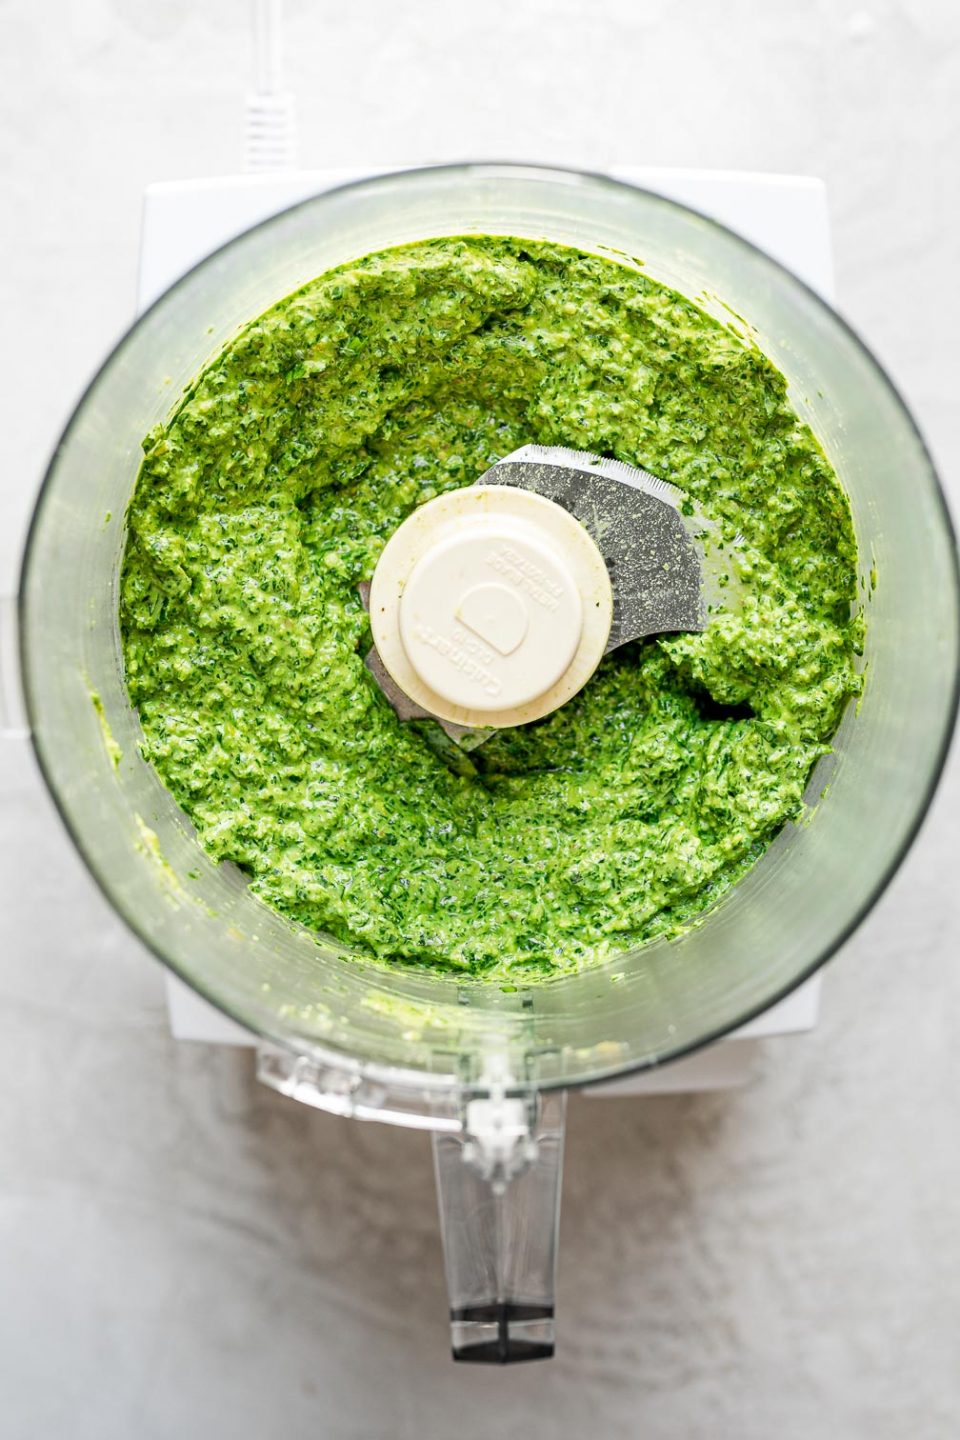 Blended green goddess pesto in a food processor carafe, atop a white surface.